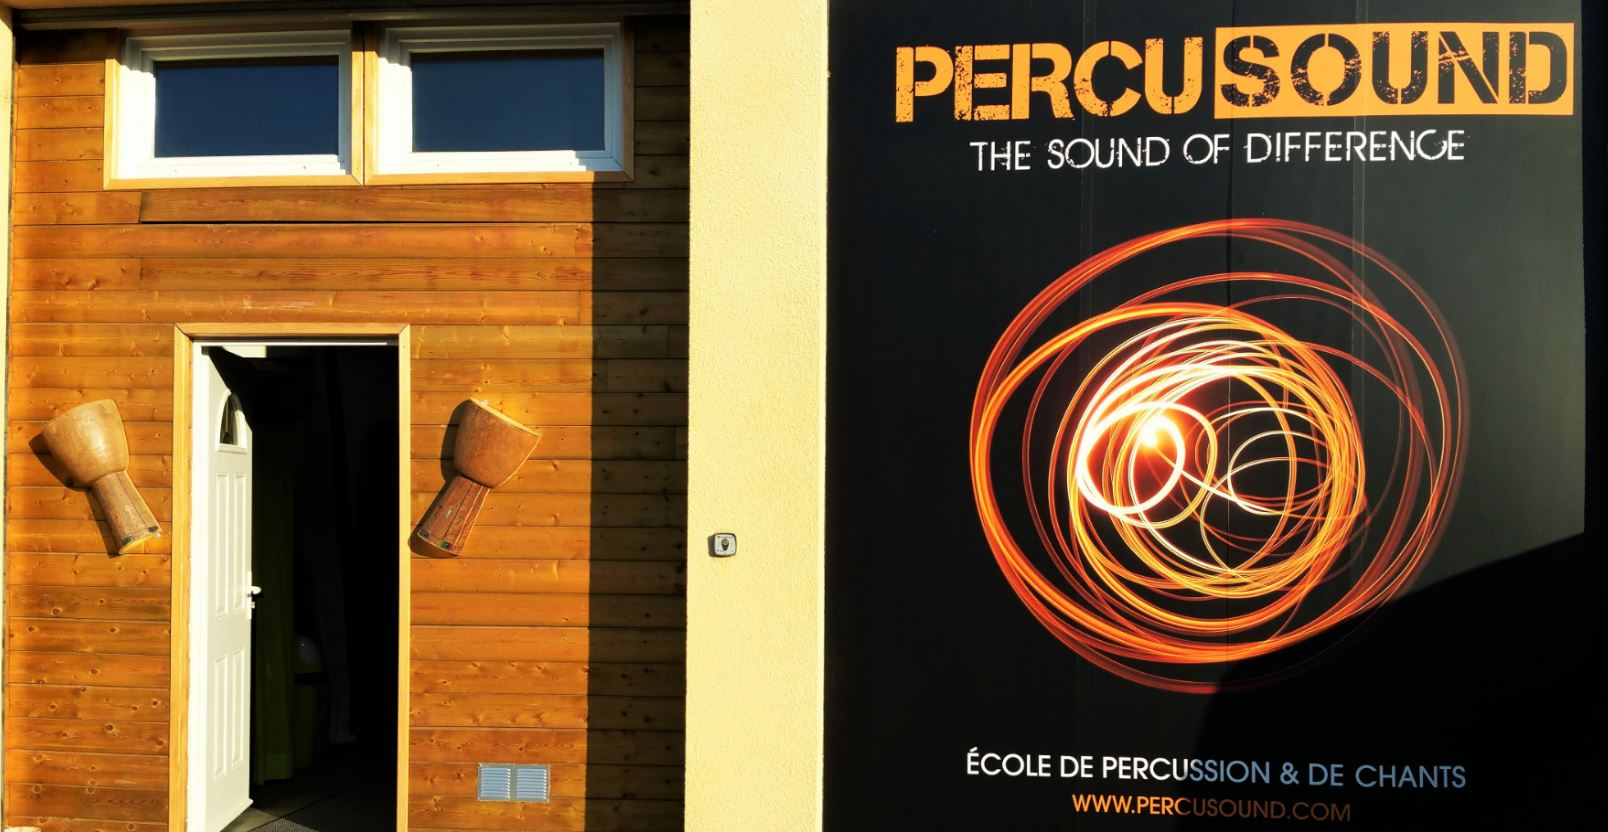 http://www.percusound.com/medias/PercuSound_Annonce_Rentree_2017-2018_11sept2017_photo_2_bandeau.jpg